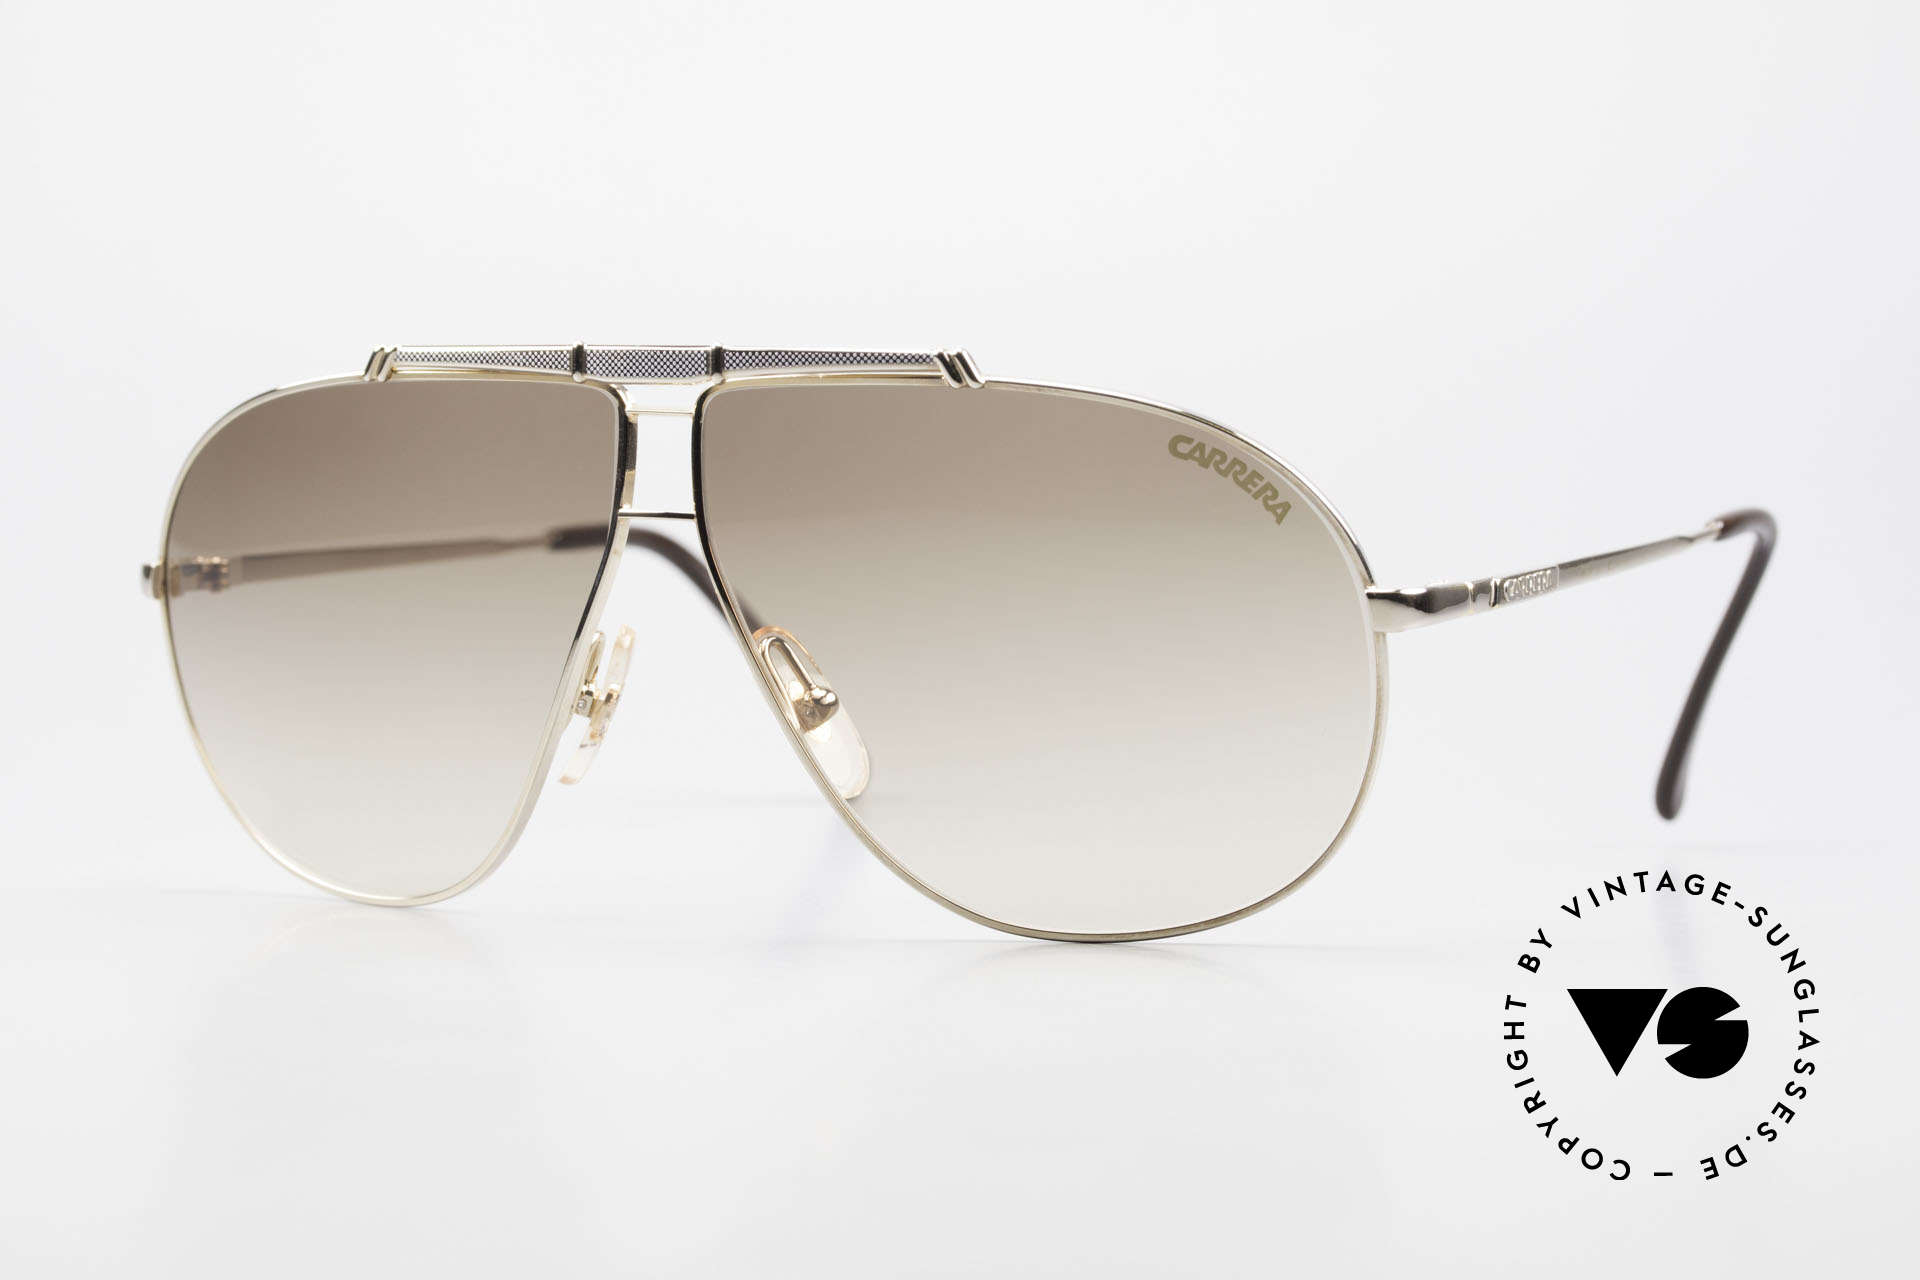 Carrera 5401 Small 80's Shades 3 Sets of Lenses, Carrera shades of the Carrera Collection from 1989/90, Made for Men and Women